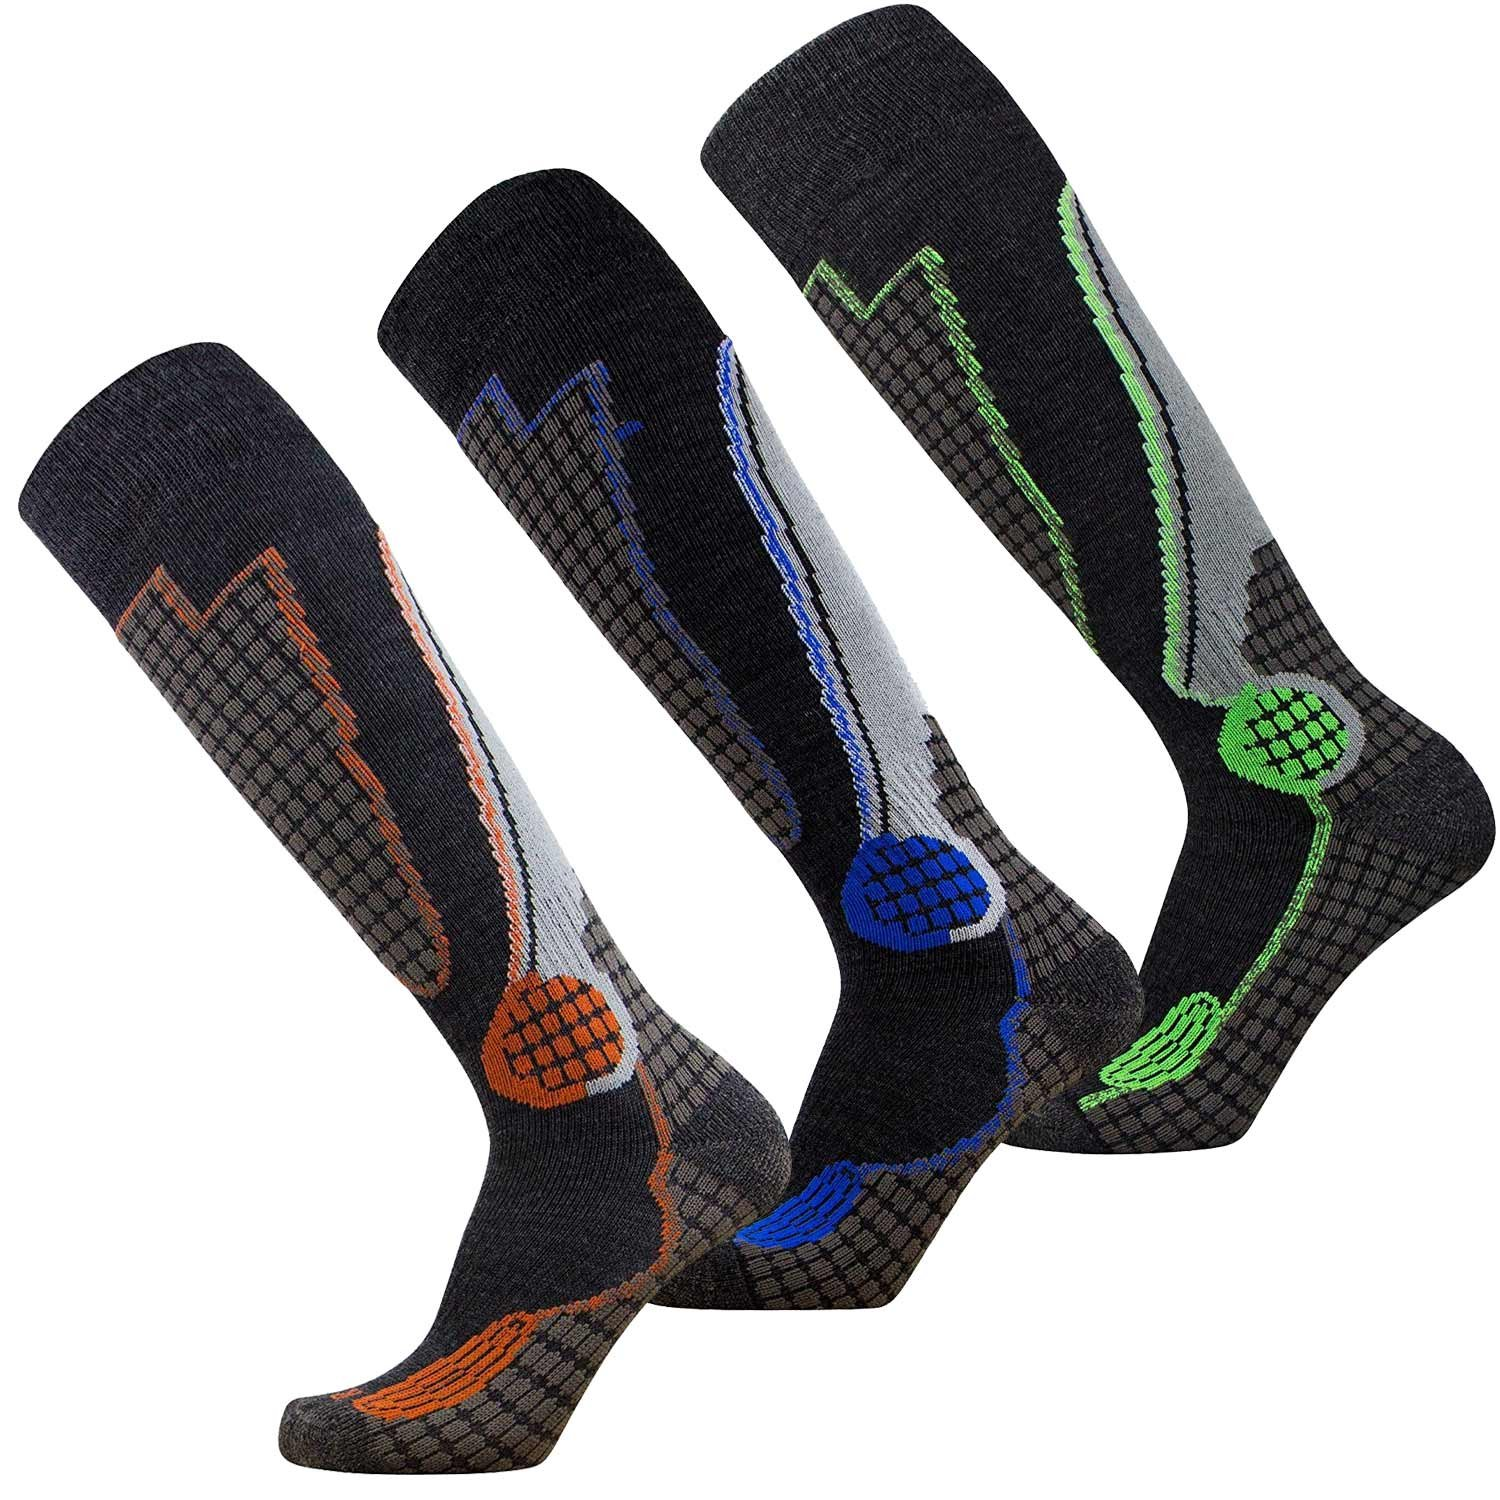 Pure Athlete High Performance Wool Ski Socks – Outdoor Wool Skiing Socks, Snowboard Socks (Black-Grey-Blue/Neon-Green/Orange - 3 Pack, Large)